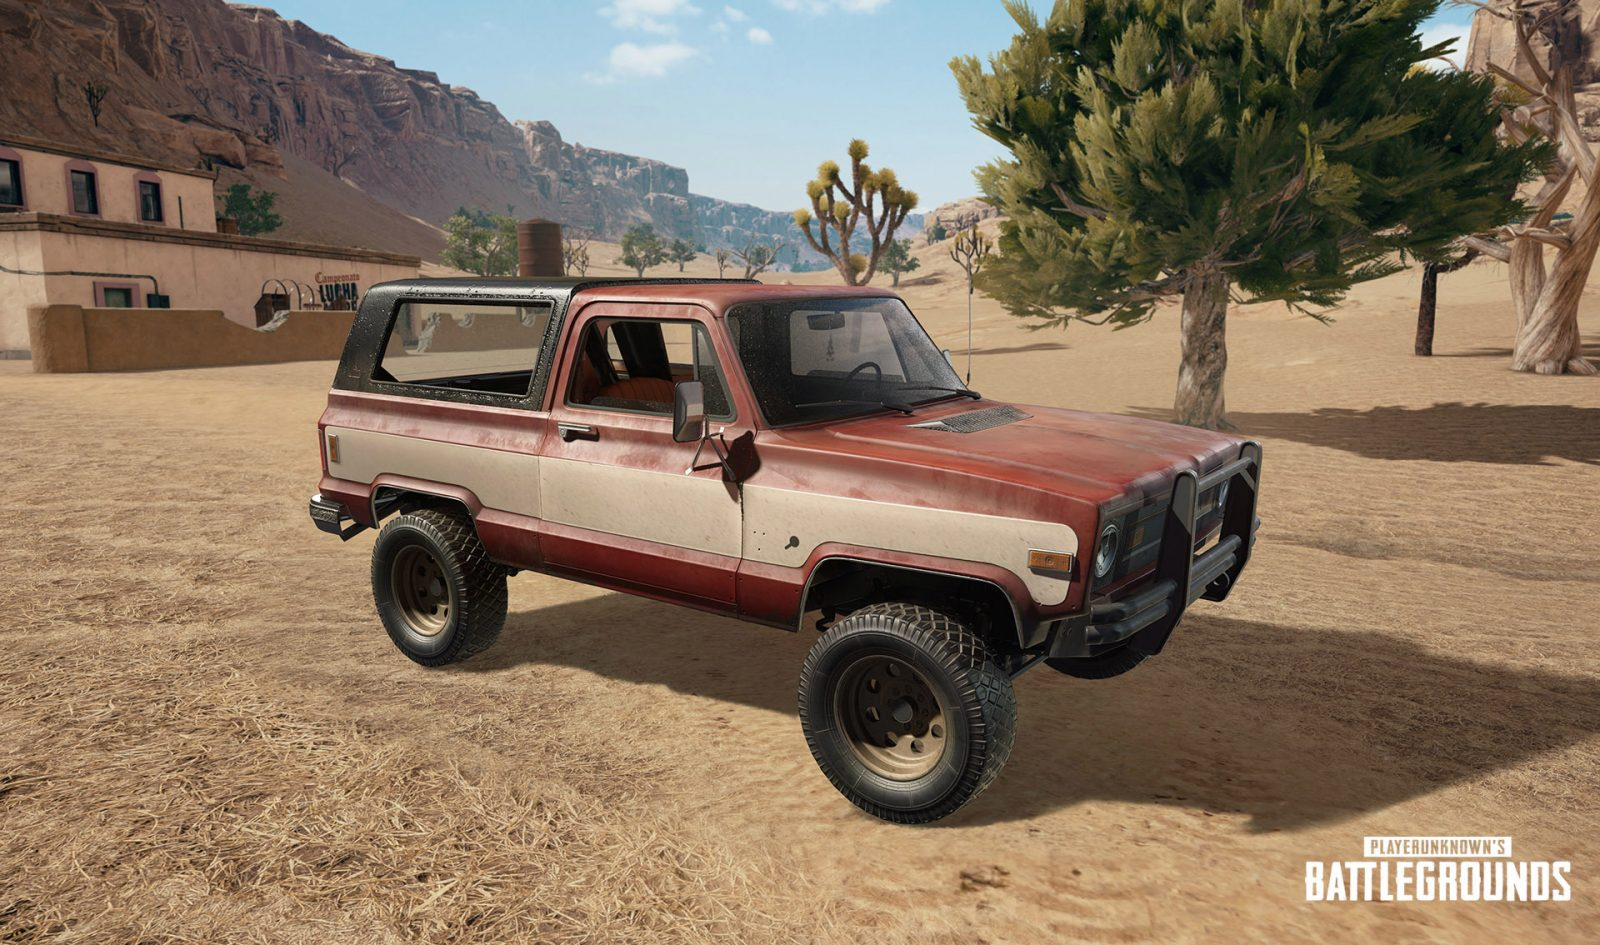 Pubg Buggy Wallpaper: NVIDIA Exclusive: PUBG Desert Map Gets A New Weapon, The